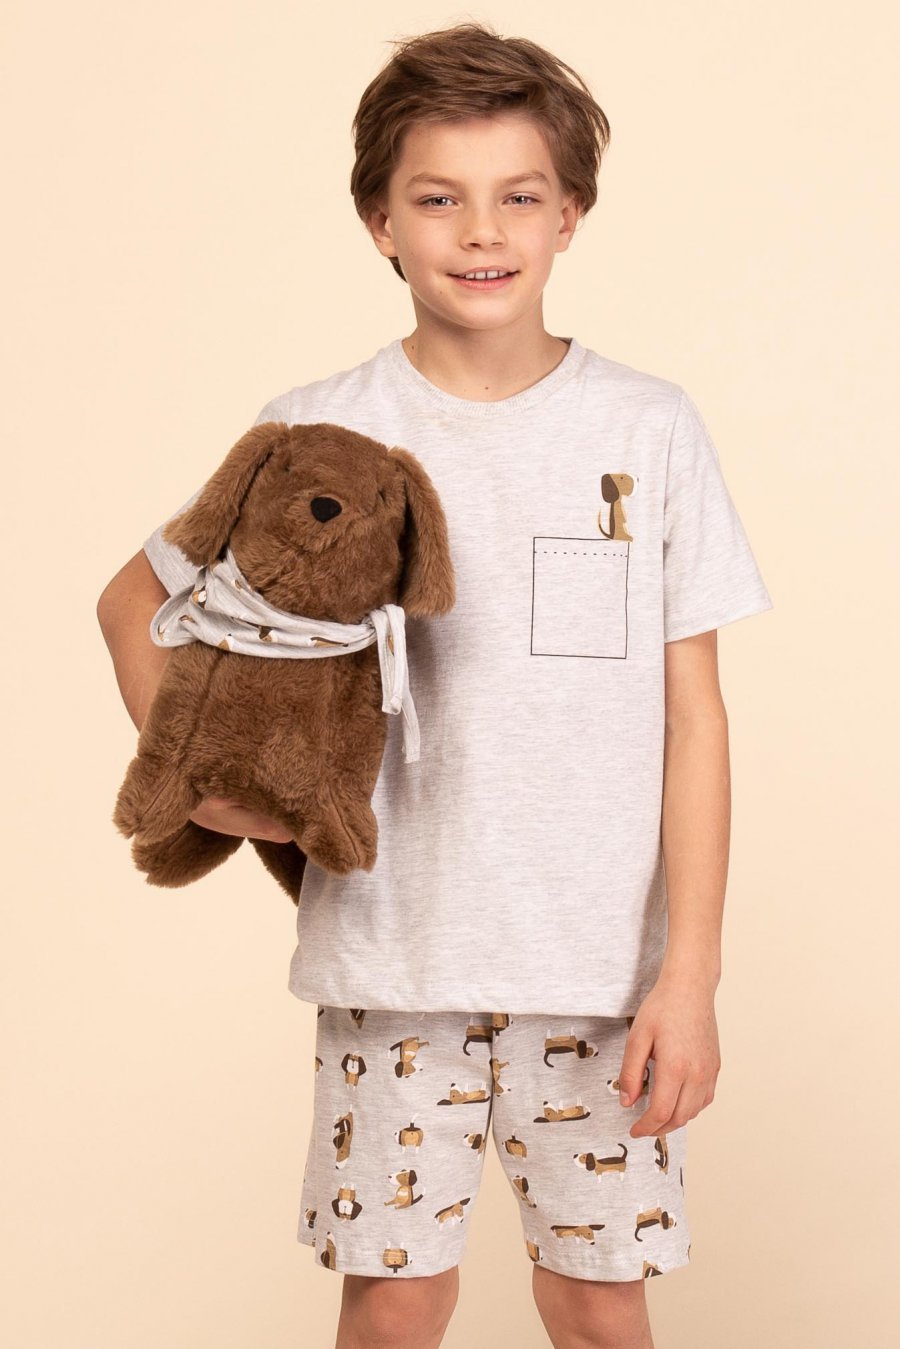 PROMO MDS Pijama Infantil 1/2 Malha Dog Happy Moments Verão 2021